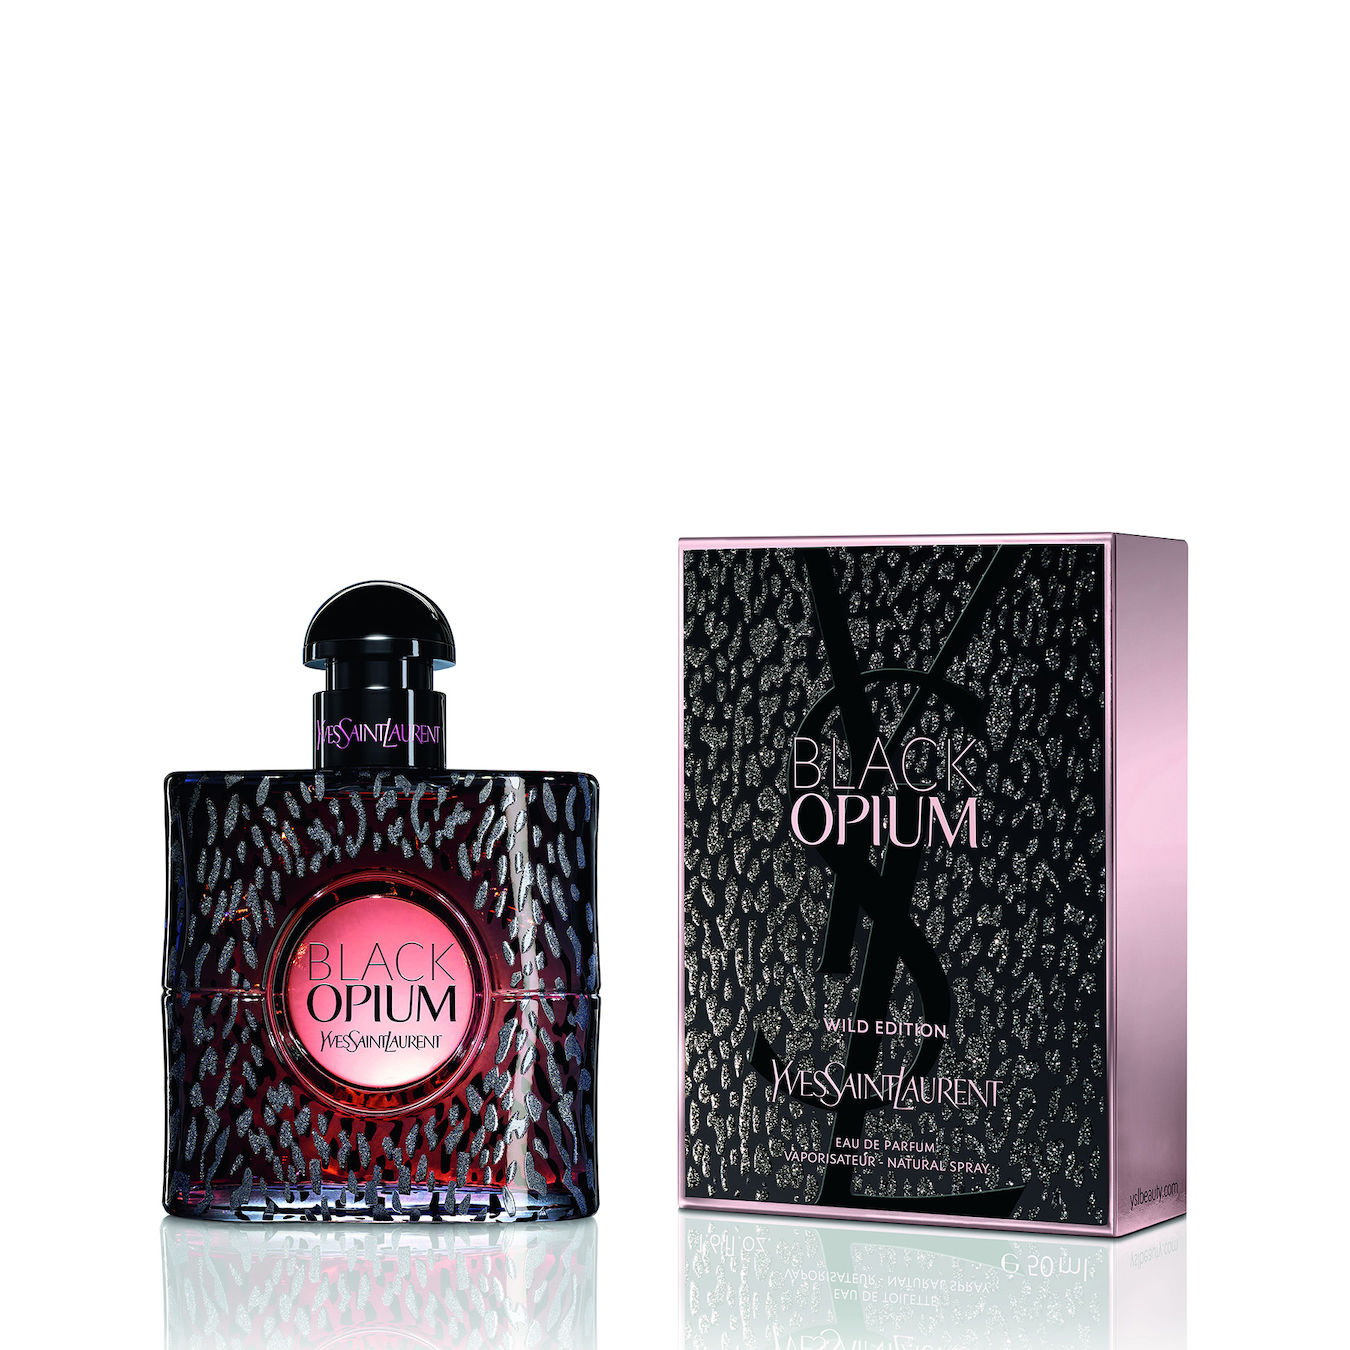 Купить Парфюмерная вода Yves Saint Laurent, Yves Saint Laurent Opium Black Wild Edition 50ml, Франция